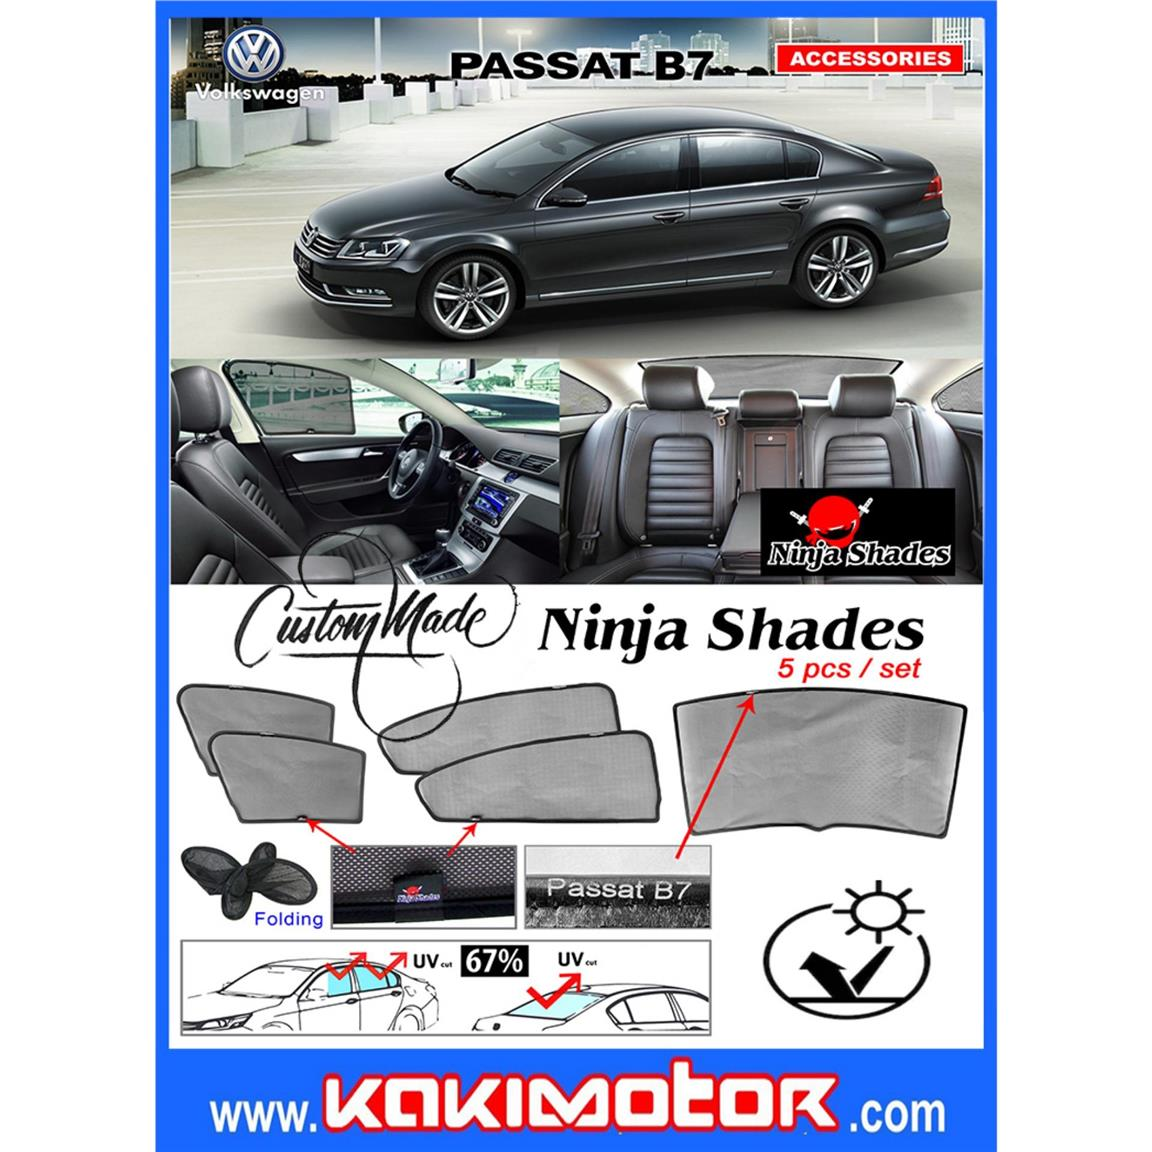 Ninja Sunshade for Volkswagen Passat B7(5PCS)